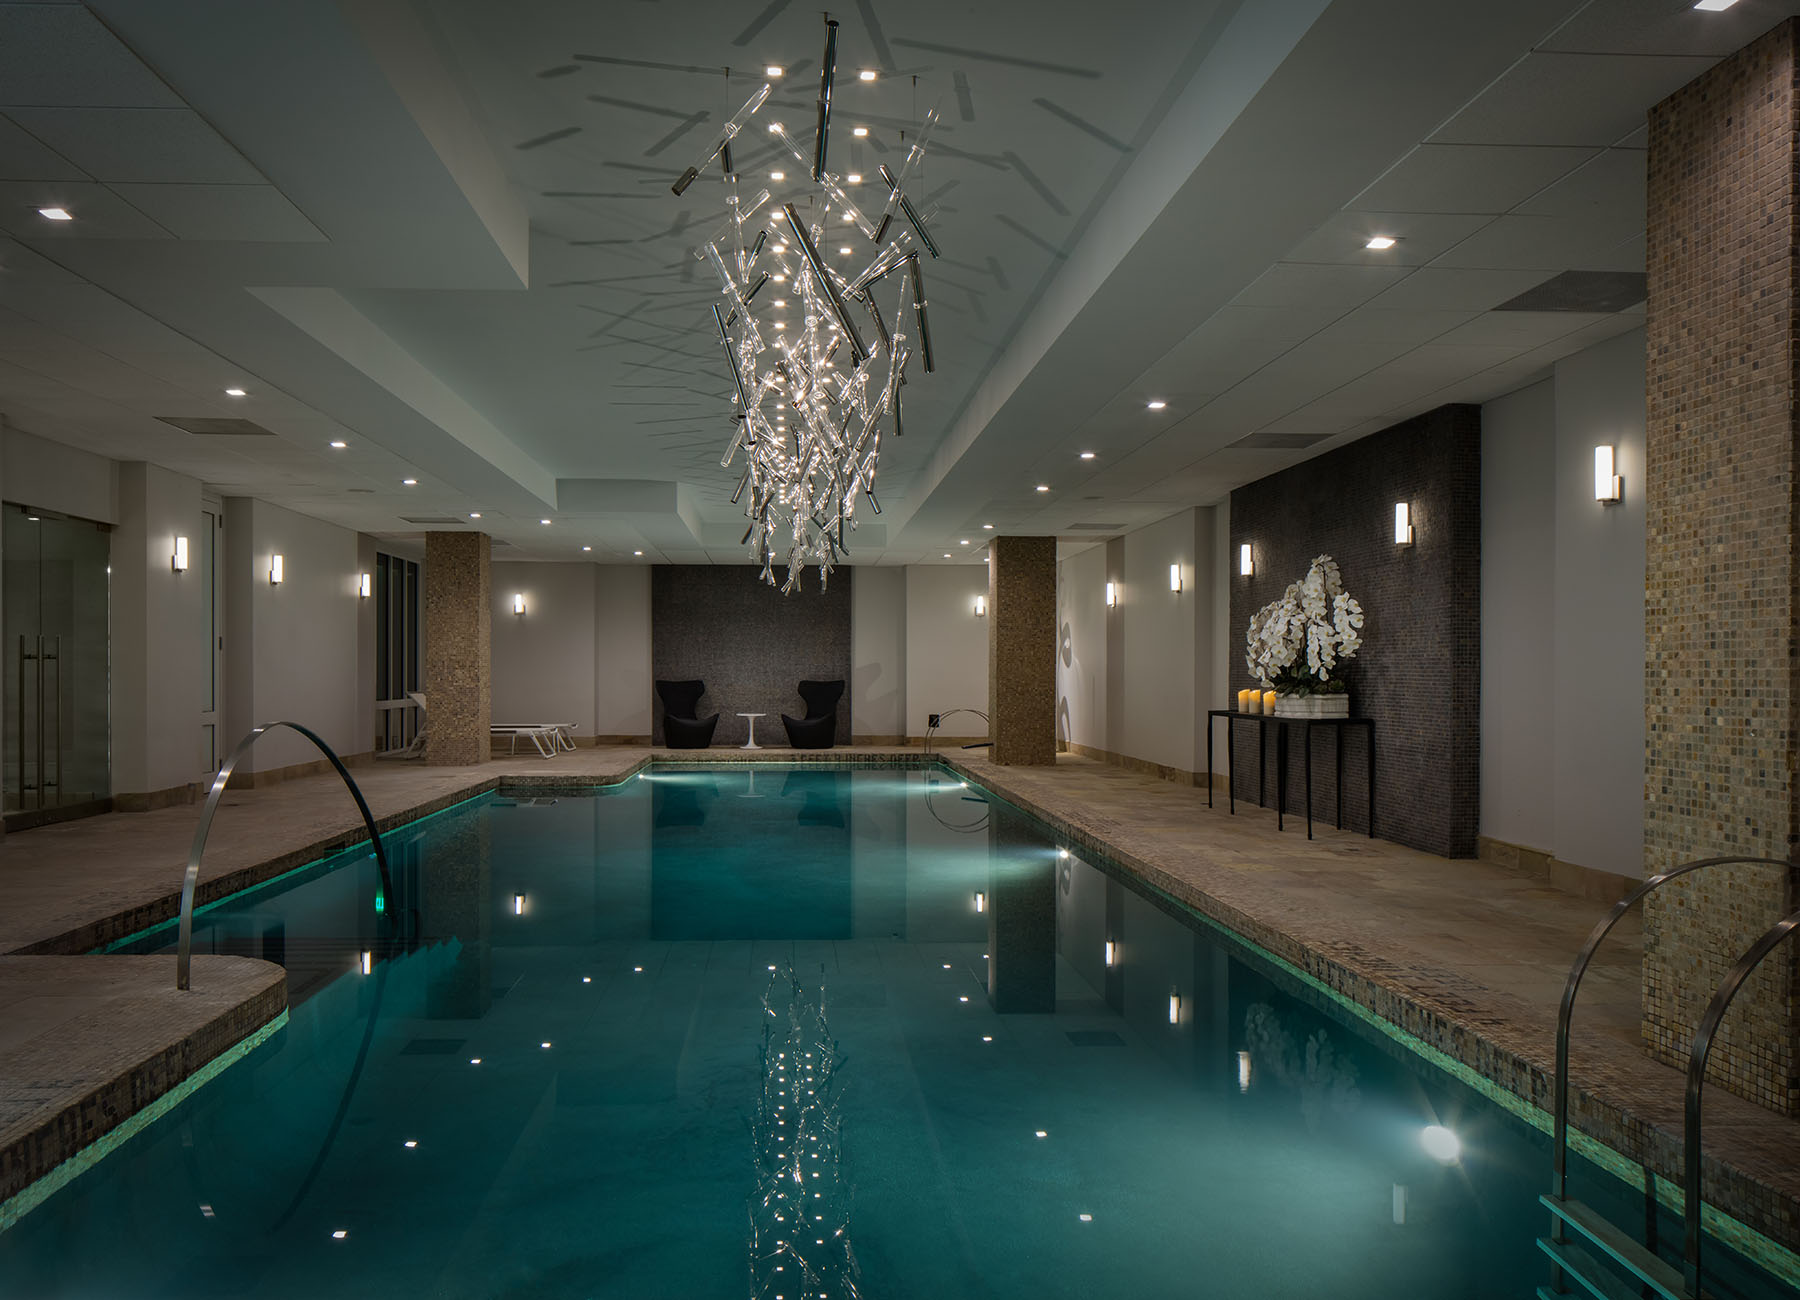 AKA Sutton Place indoor pool with chrome lighting and marble accents